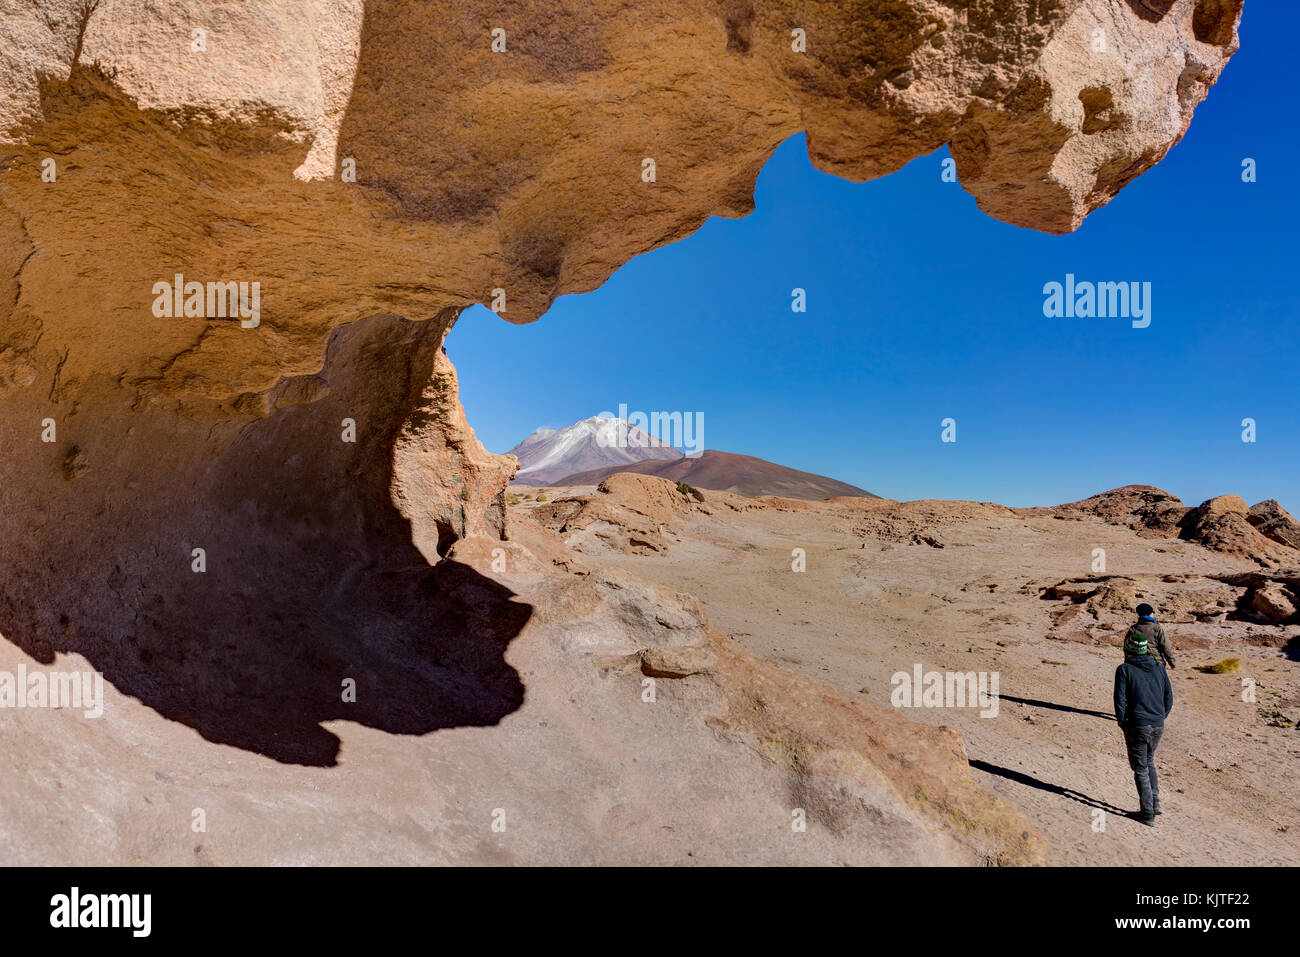 Photo taken in August 2017 in Altiplano Bolivia, South America: Valley of the stones Altiplano Bolivia Desert Salar - Stock Image